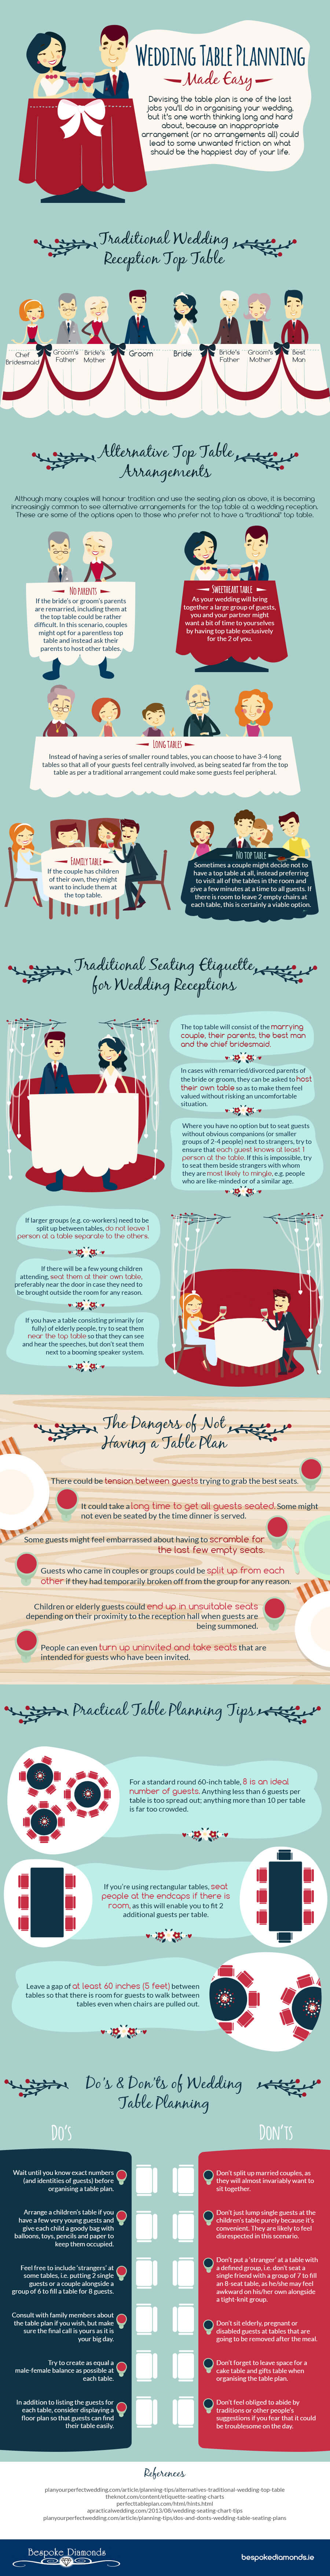 Wedding-Table-Planning-Made-Easy-BespokeDiamonds-infographic-plaza